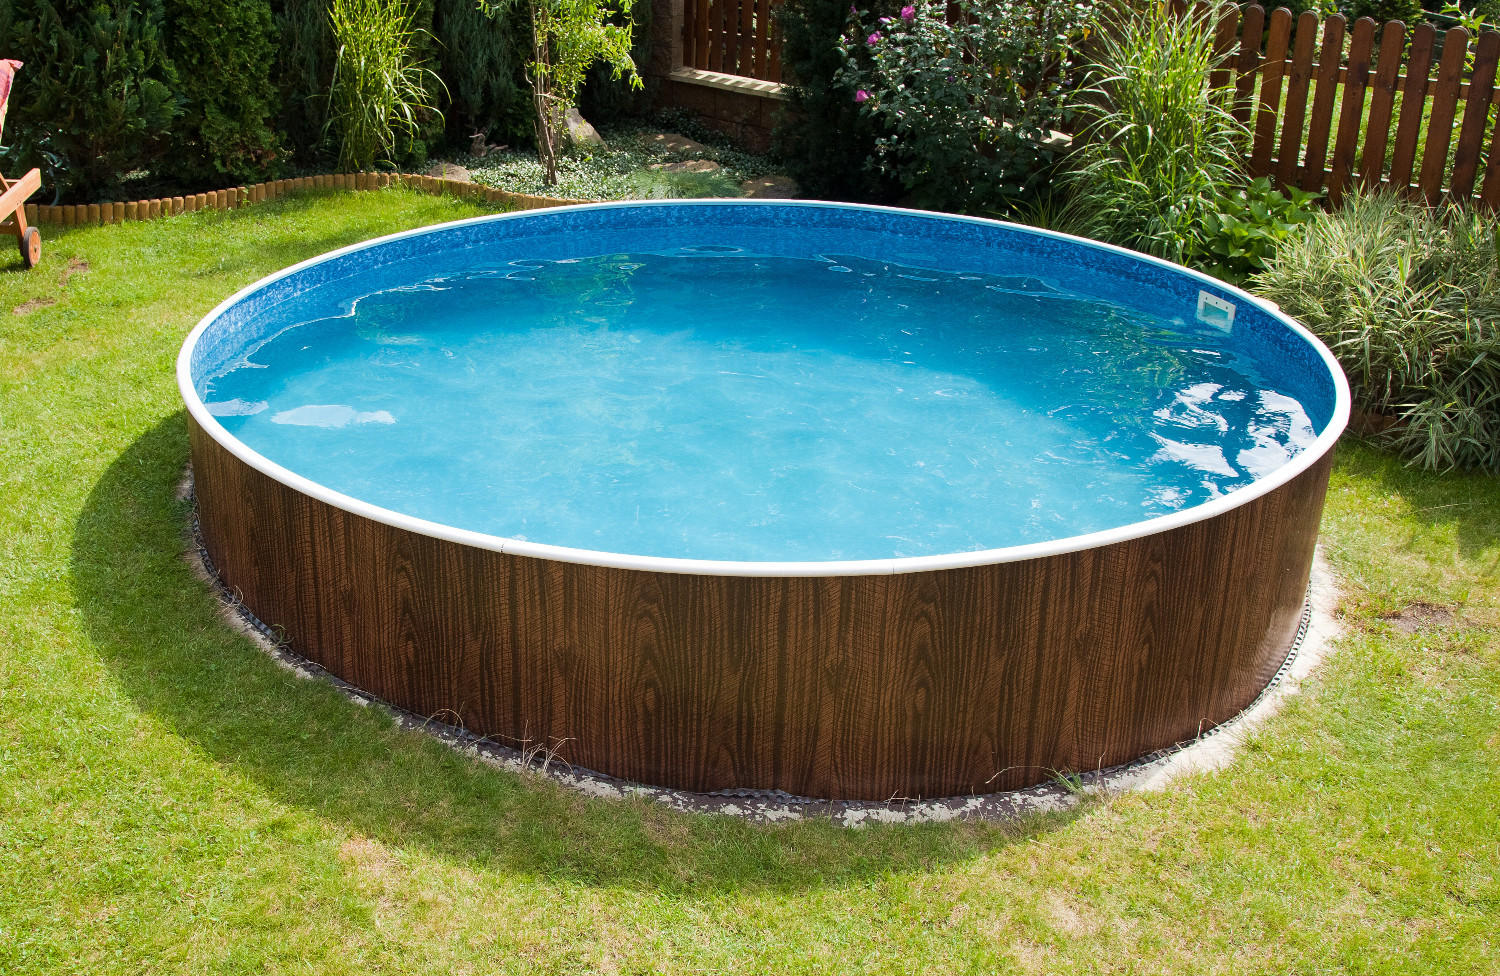 Holzoptik-Pools